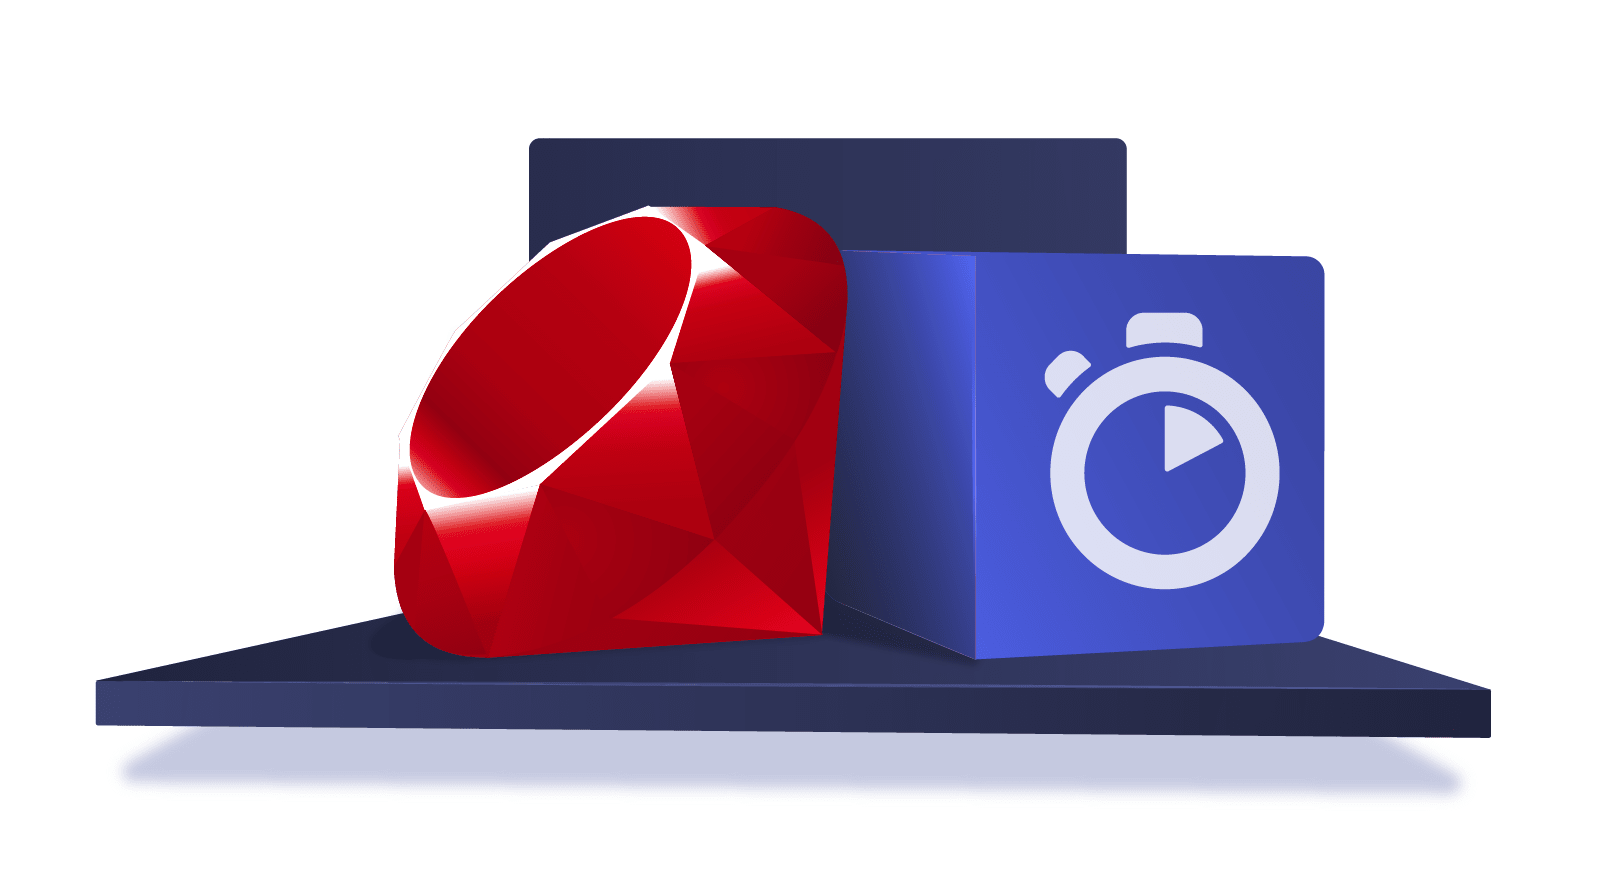 Ruby Client v2 is out!